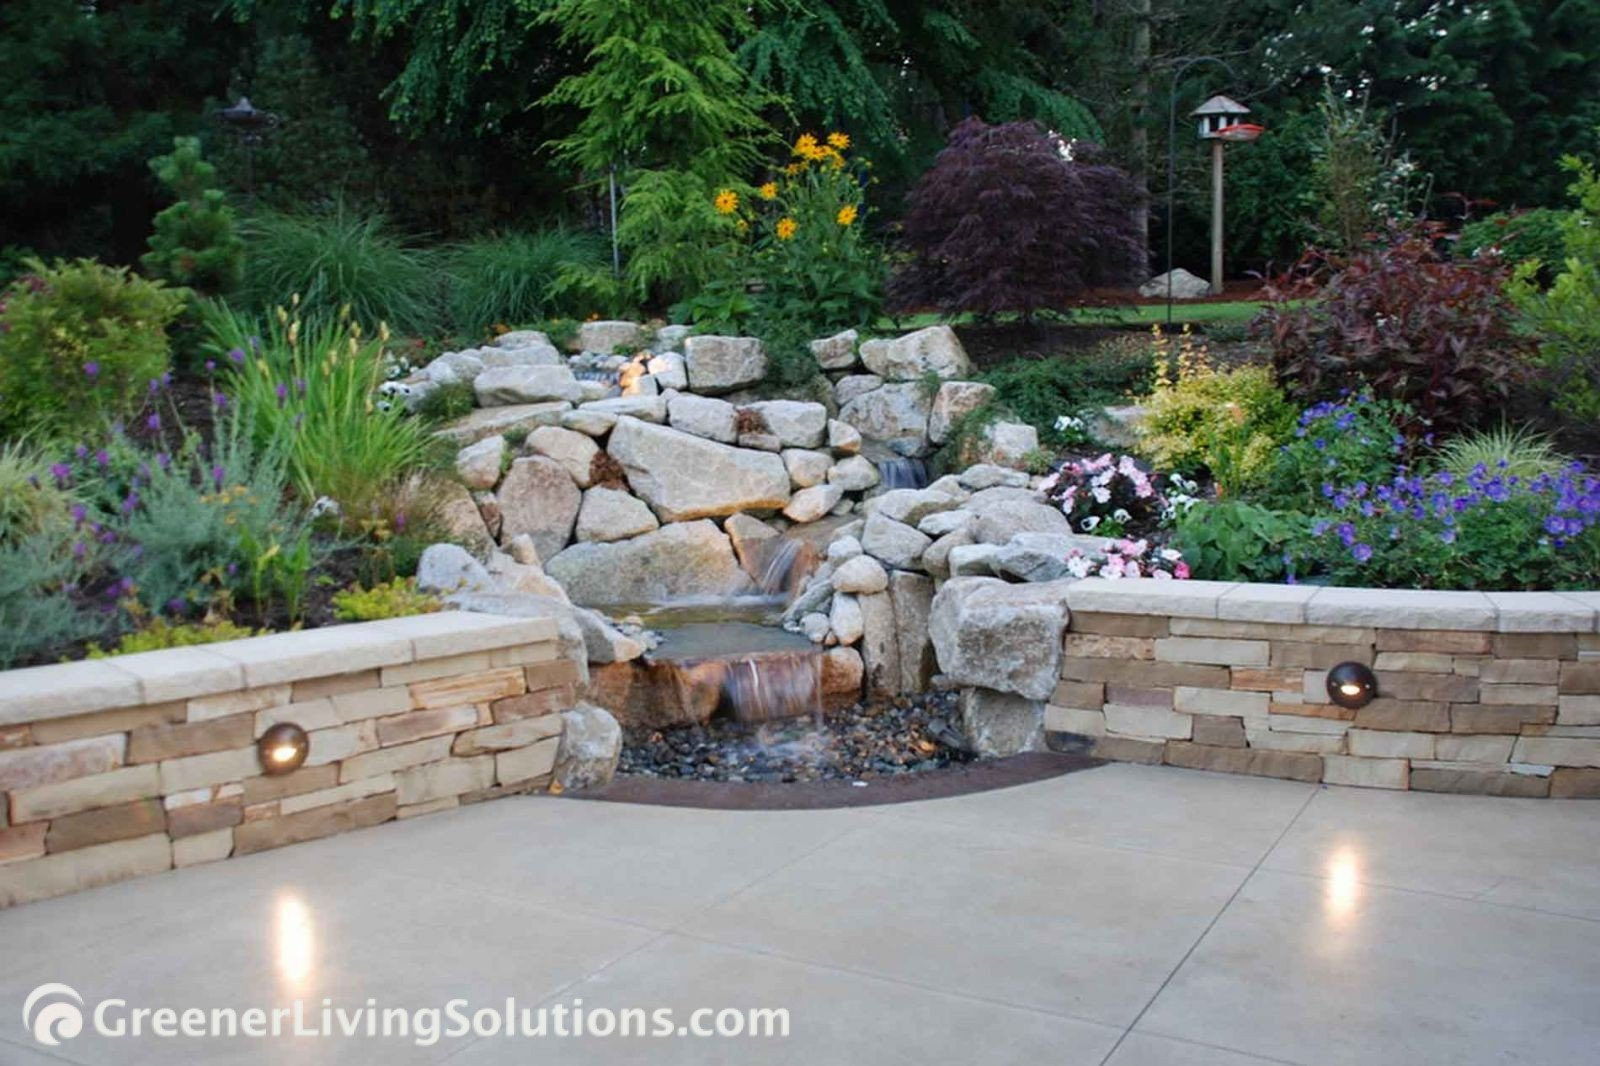 fire-and-water-in-sammamish_greener-living-solutions-009